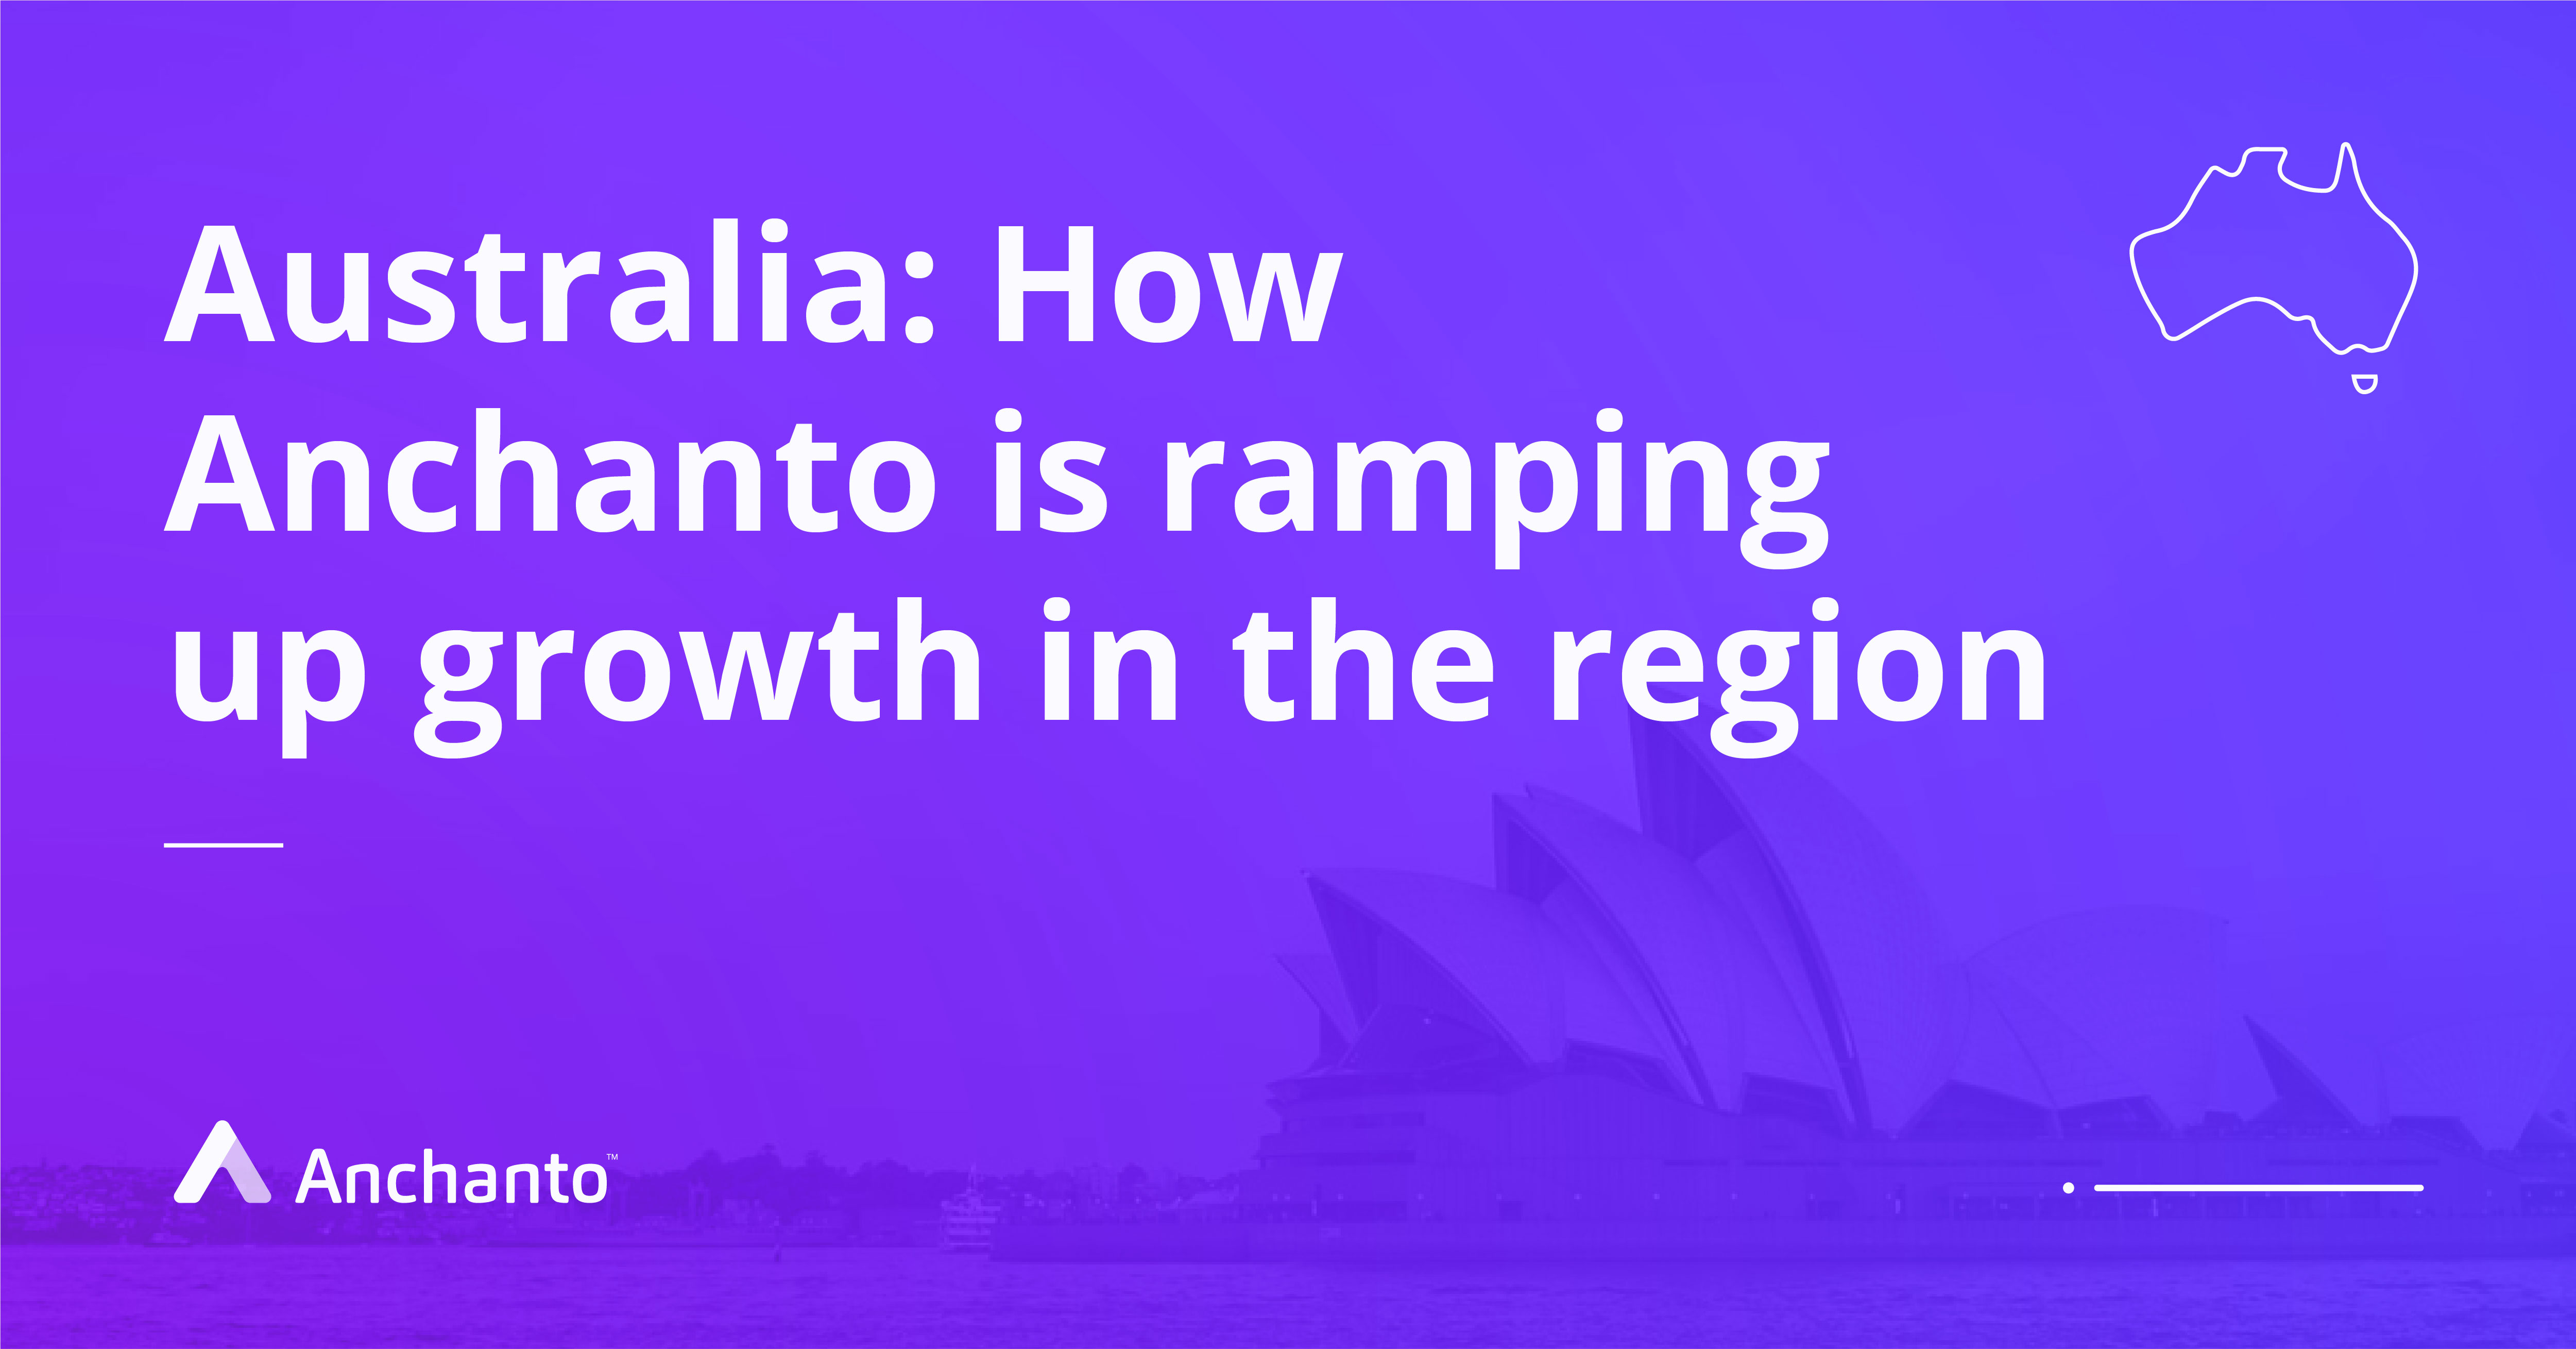 how_anchanto_is_ramping_up_growth_in_the_region